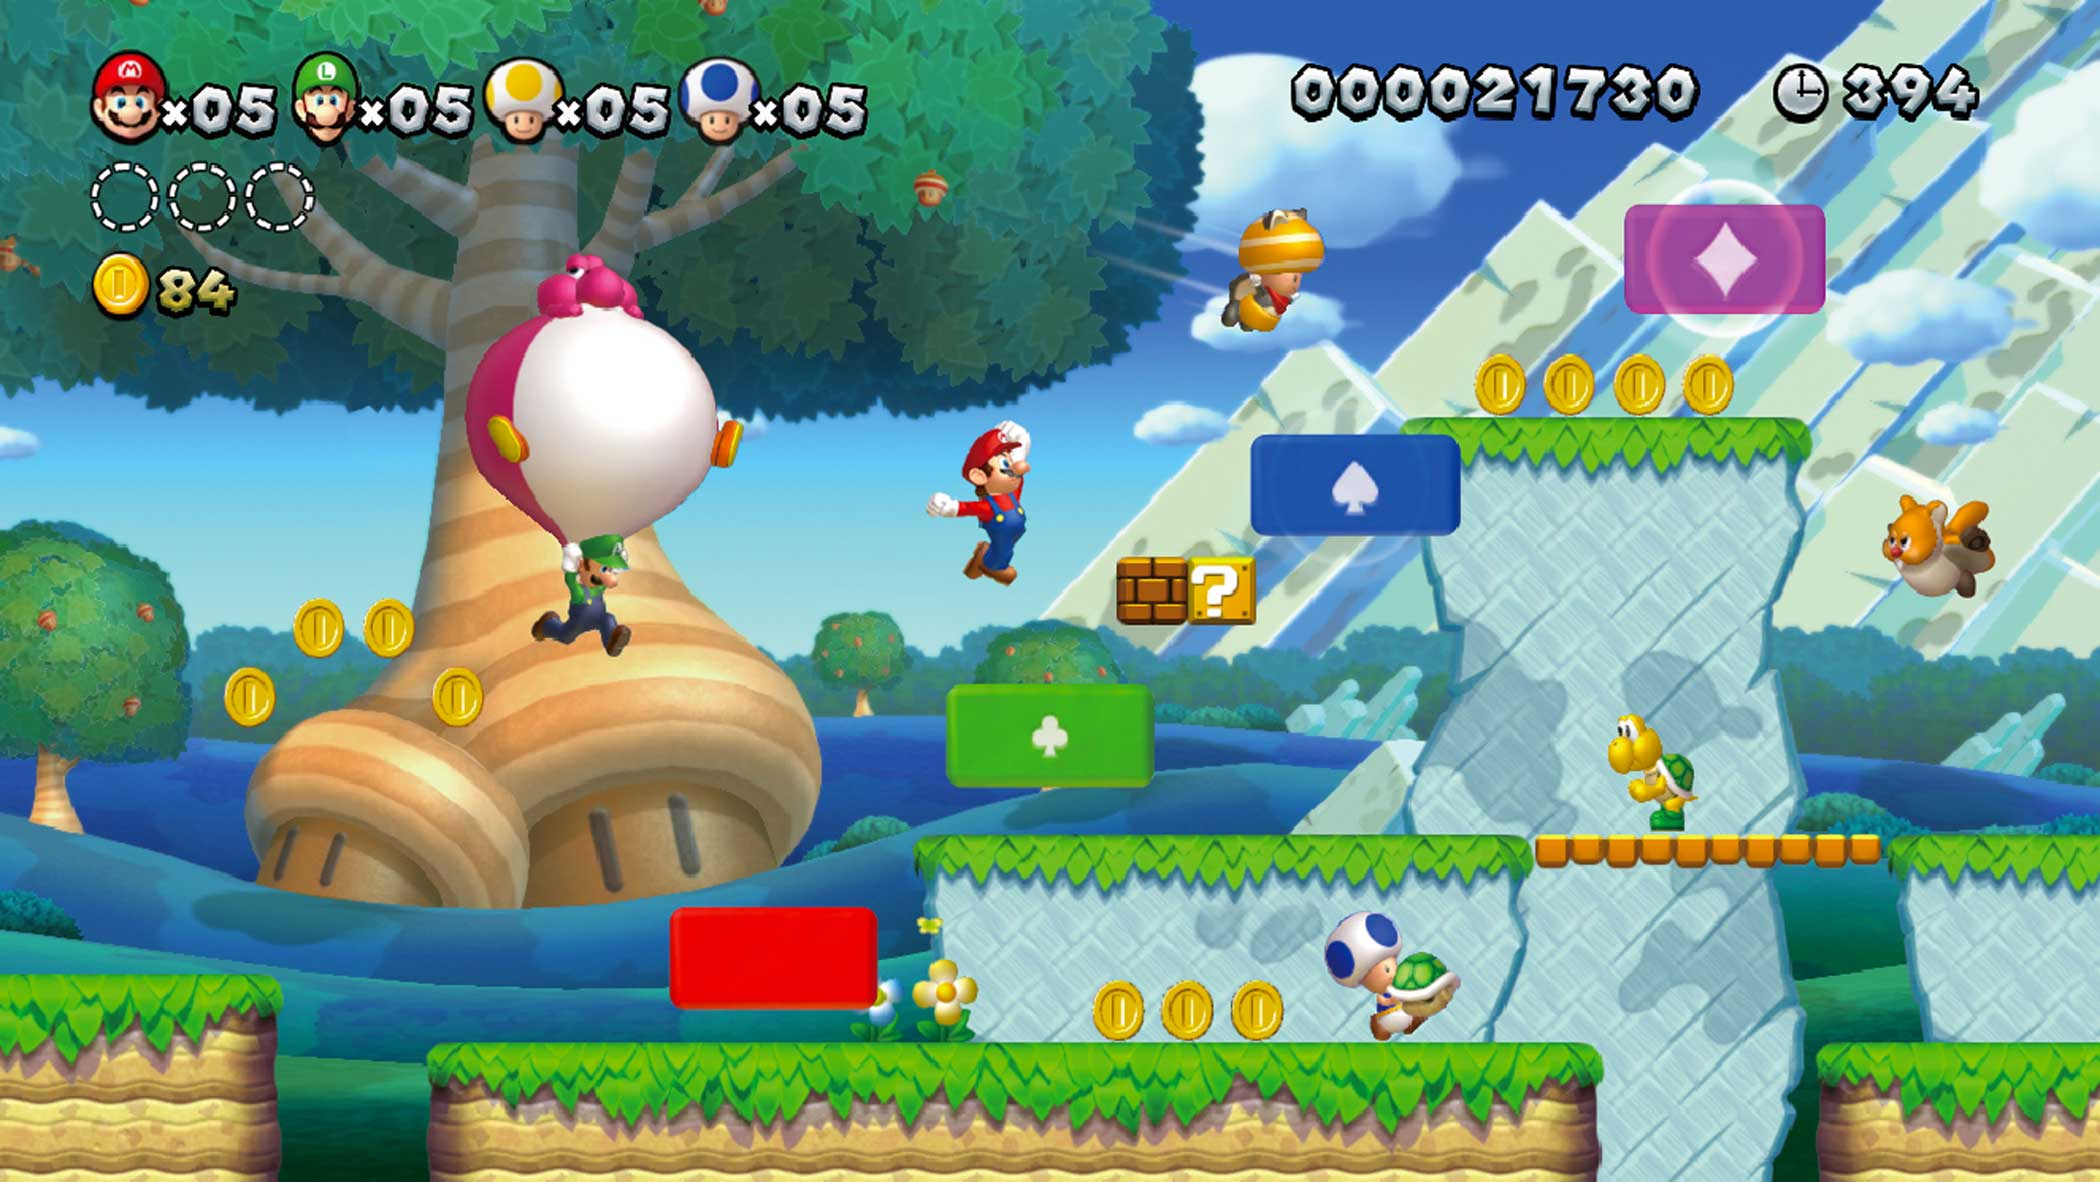 2012: New Super Mario Bros. U                                                              Benefitting from the Wii U's higher-definition visual output, New Super Mario Bros. U is one of the prettiest Mario games Nintendo's released, and though it relies heavily on series tropes, contains some of the smartest levels Nintendo's yet designed.